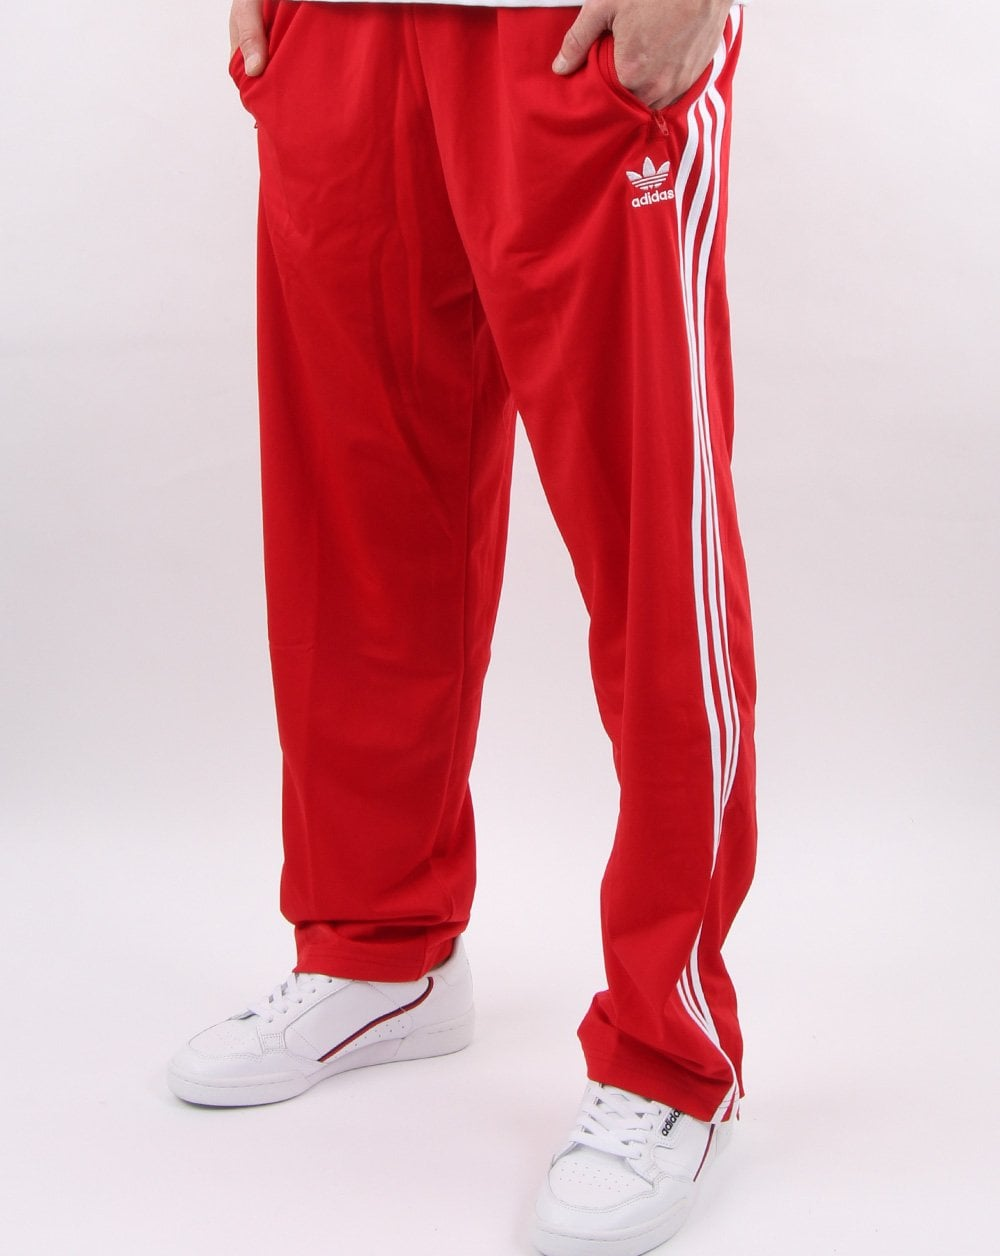 a1a06338 Adidas Firebird Track Pants Scarlet Red - Adidas At 80s Casual Classics